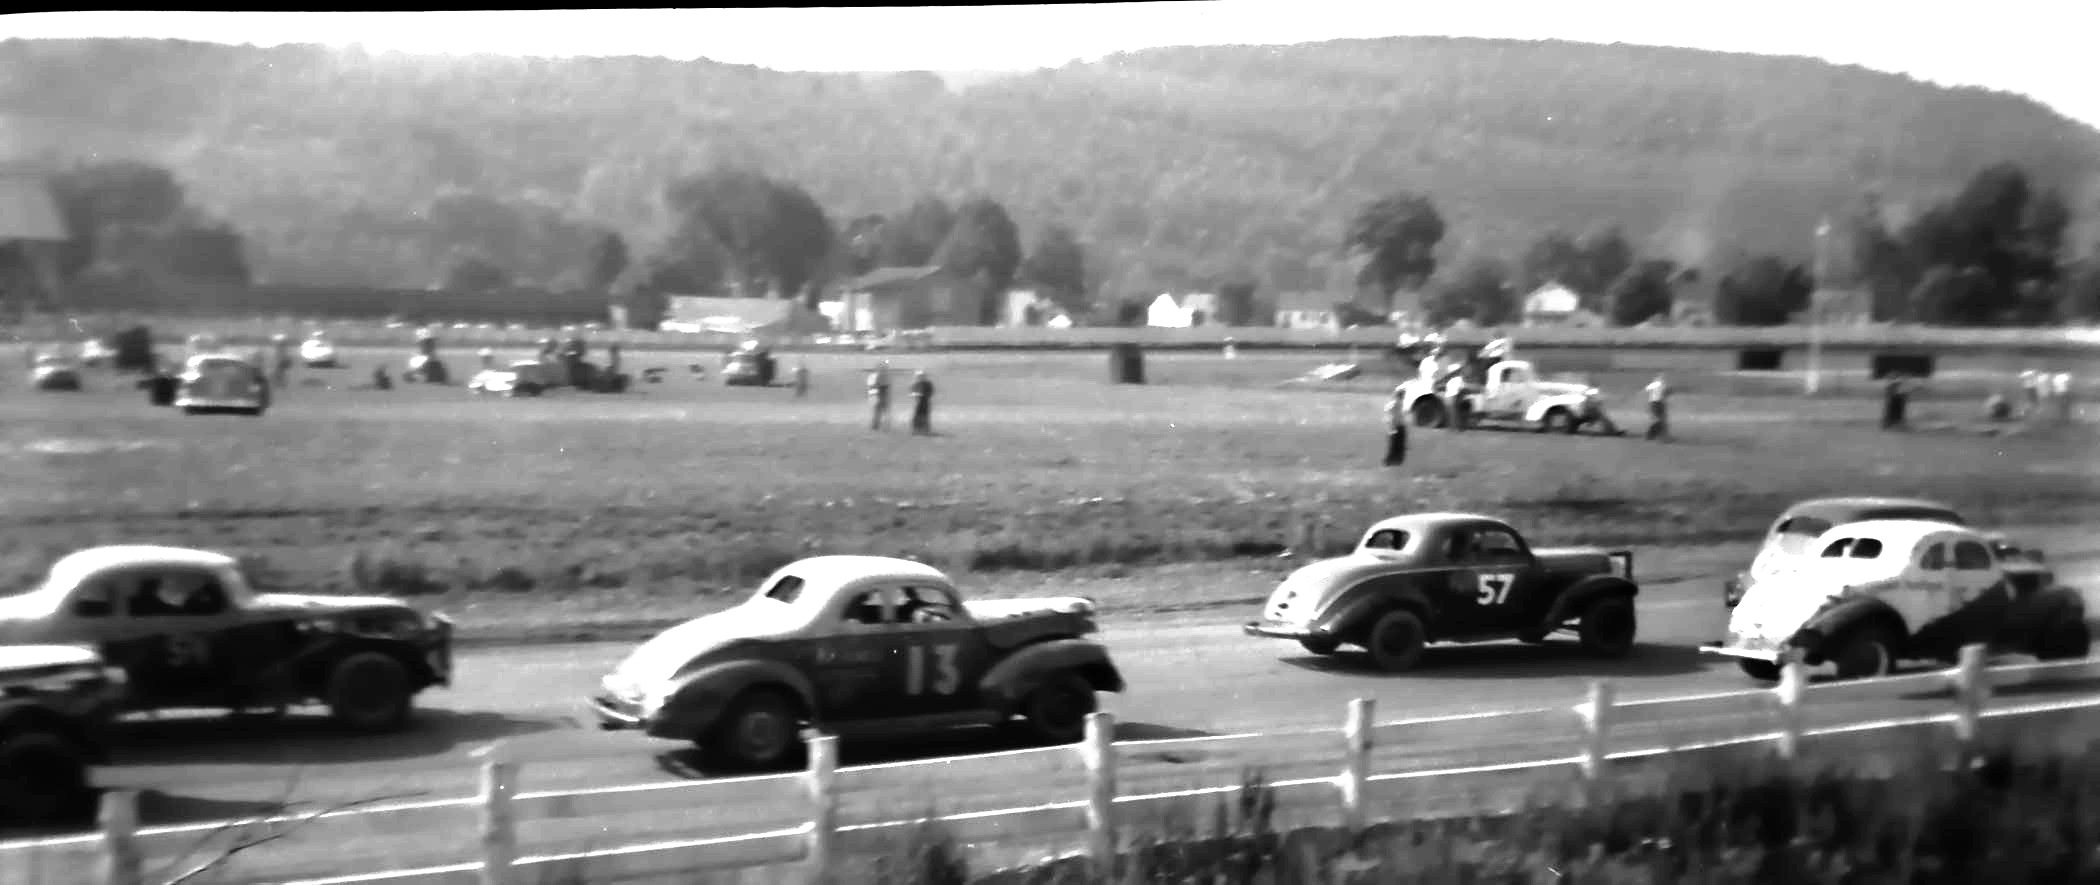 Vintage Dirt Track Cars >> Random Images: Dirt Track racing in the 50s | The Jalopy Journal The Jalopy Journal